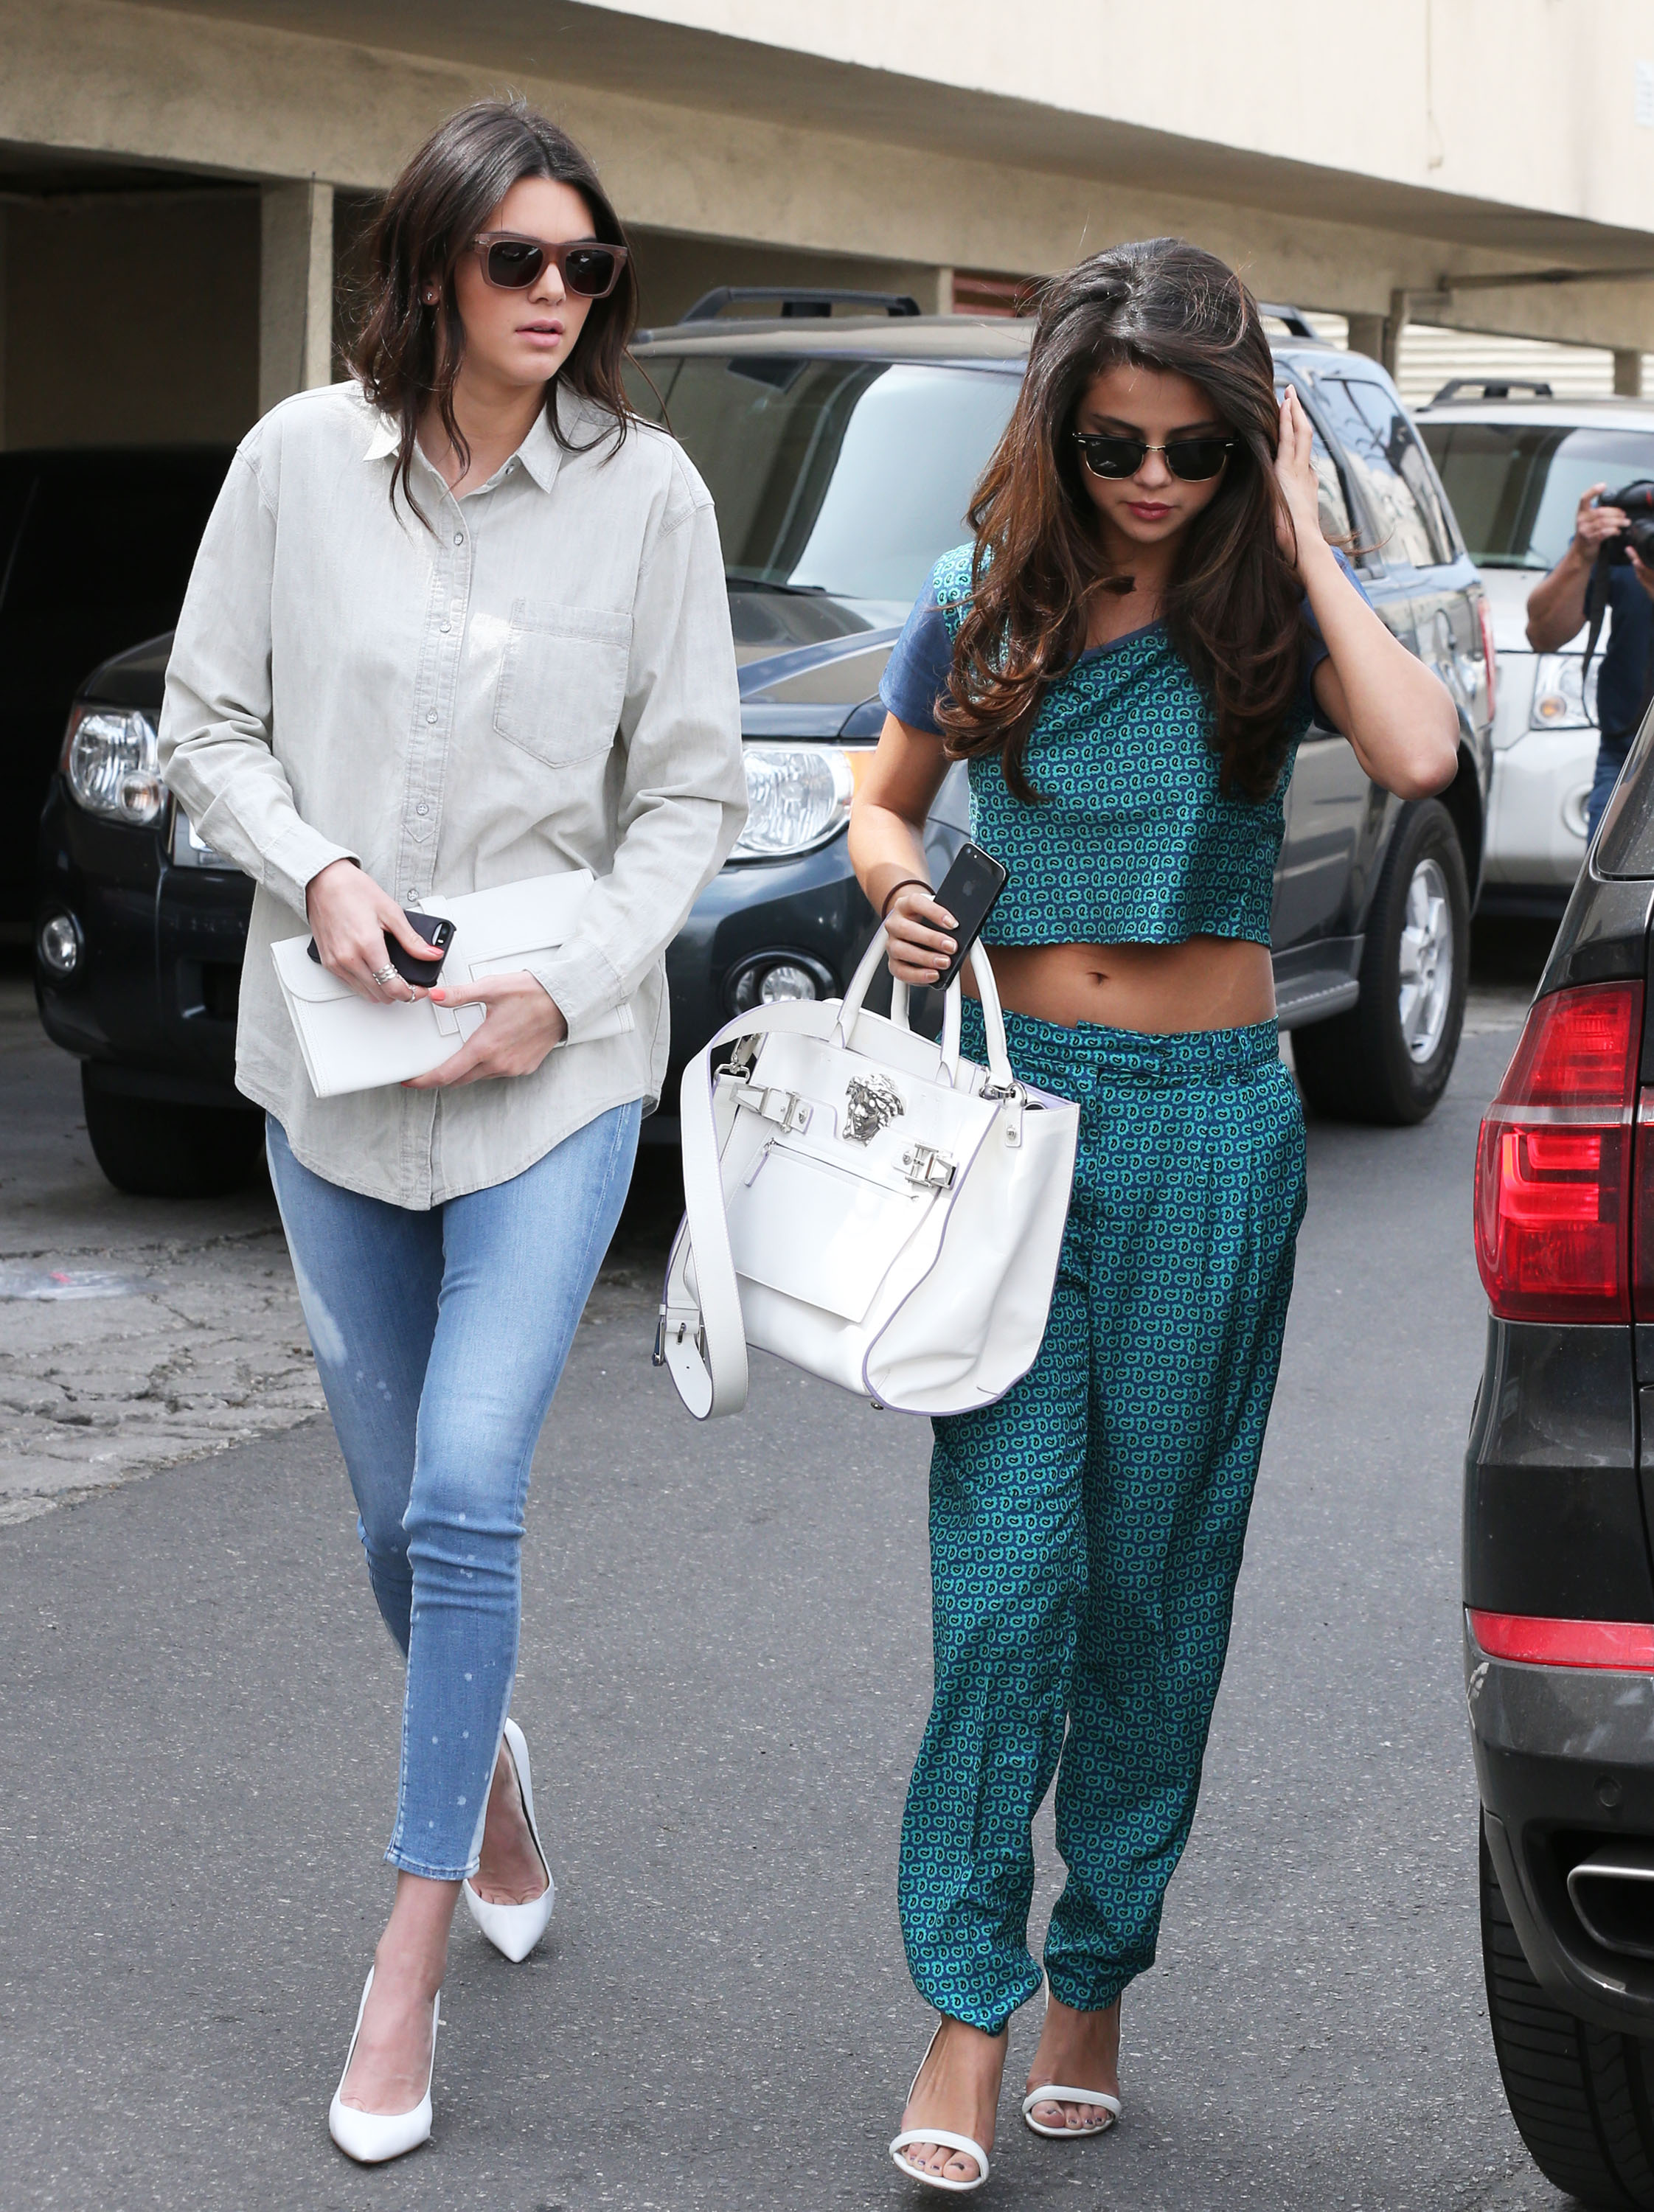 Kendall Jenner And Selena Gomez Share This Link